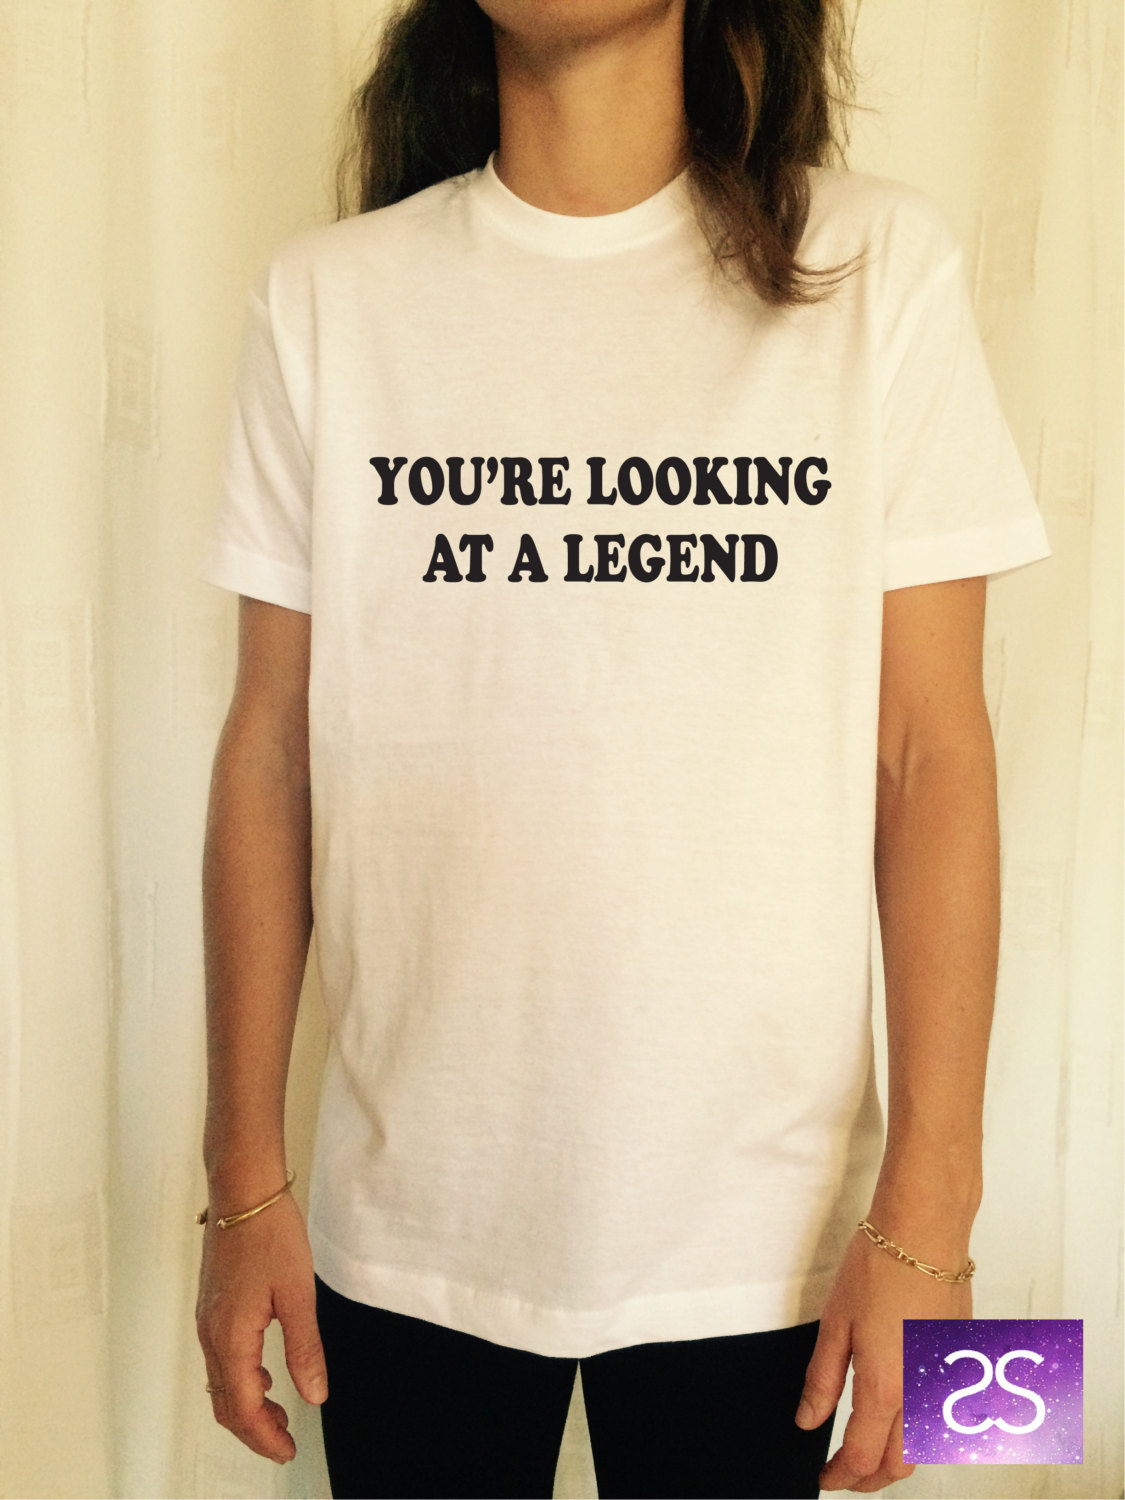 re looking at a legend t-shirts for women UNISEX tshirts shirts ...